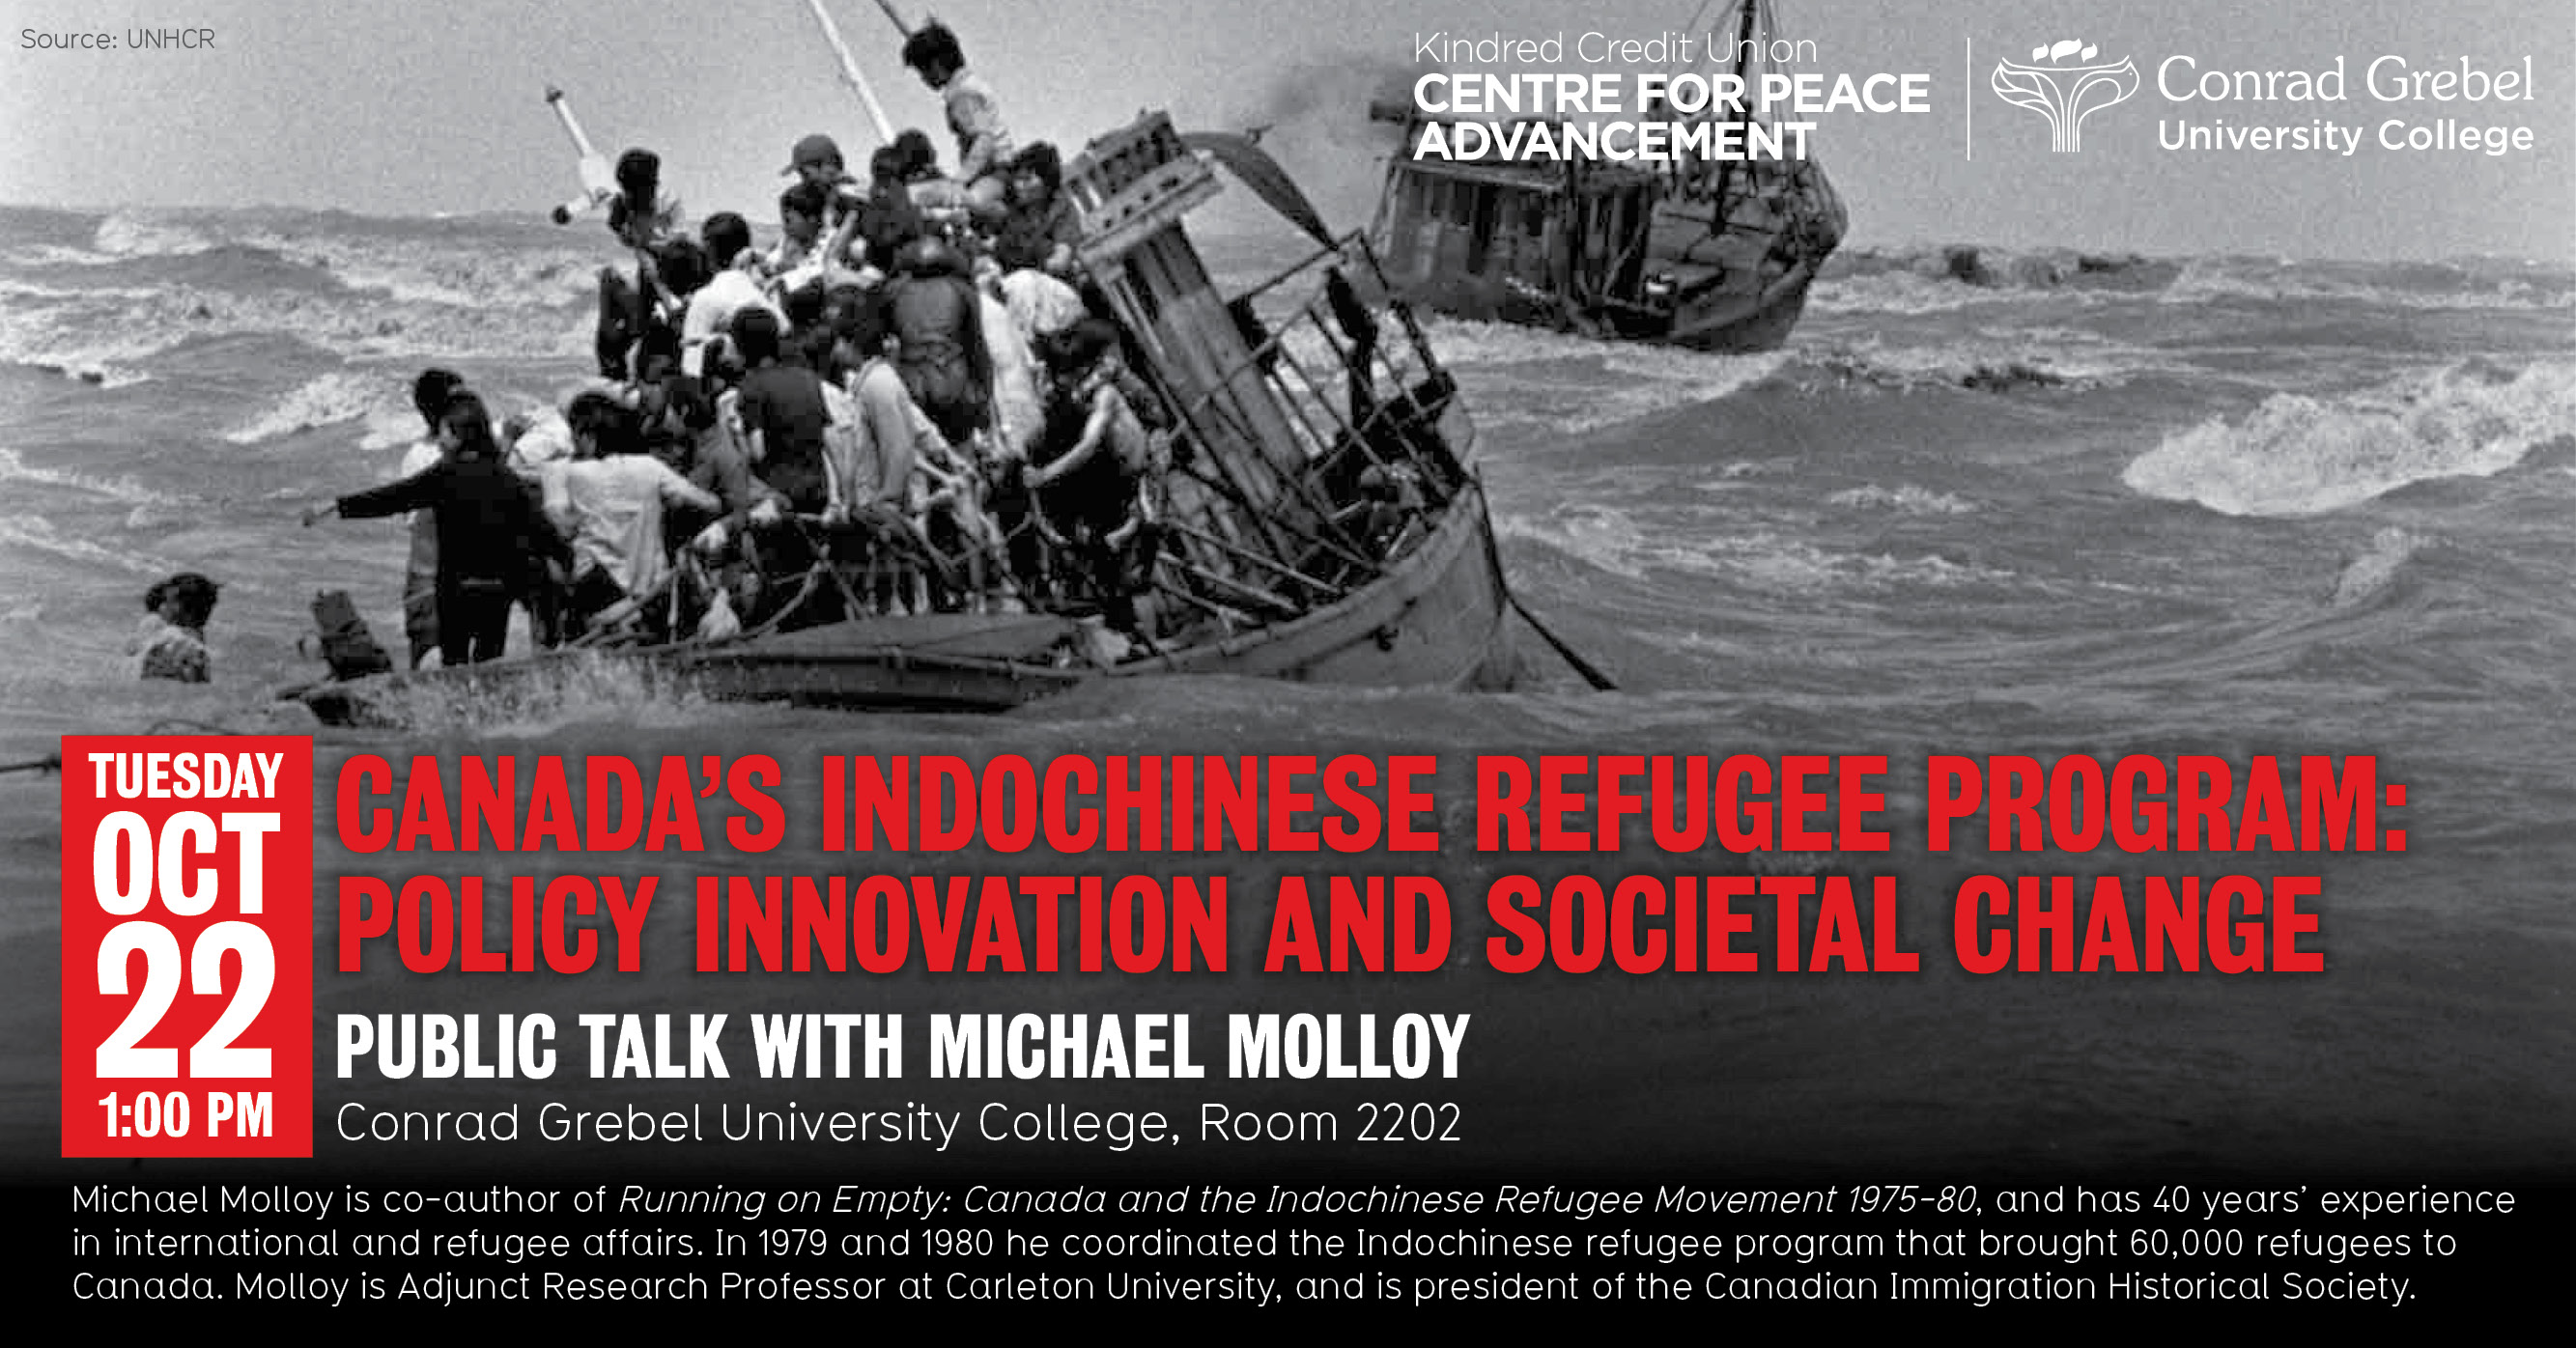 Poster for Michael Molloy lecture with picture of refugees on a boat